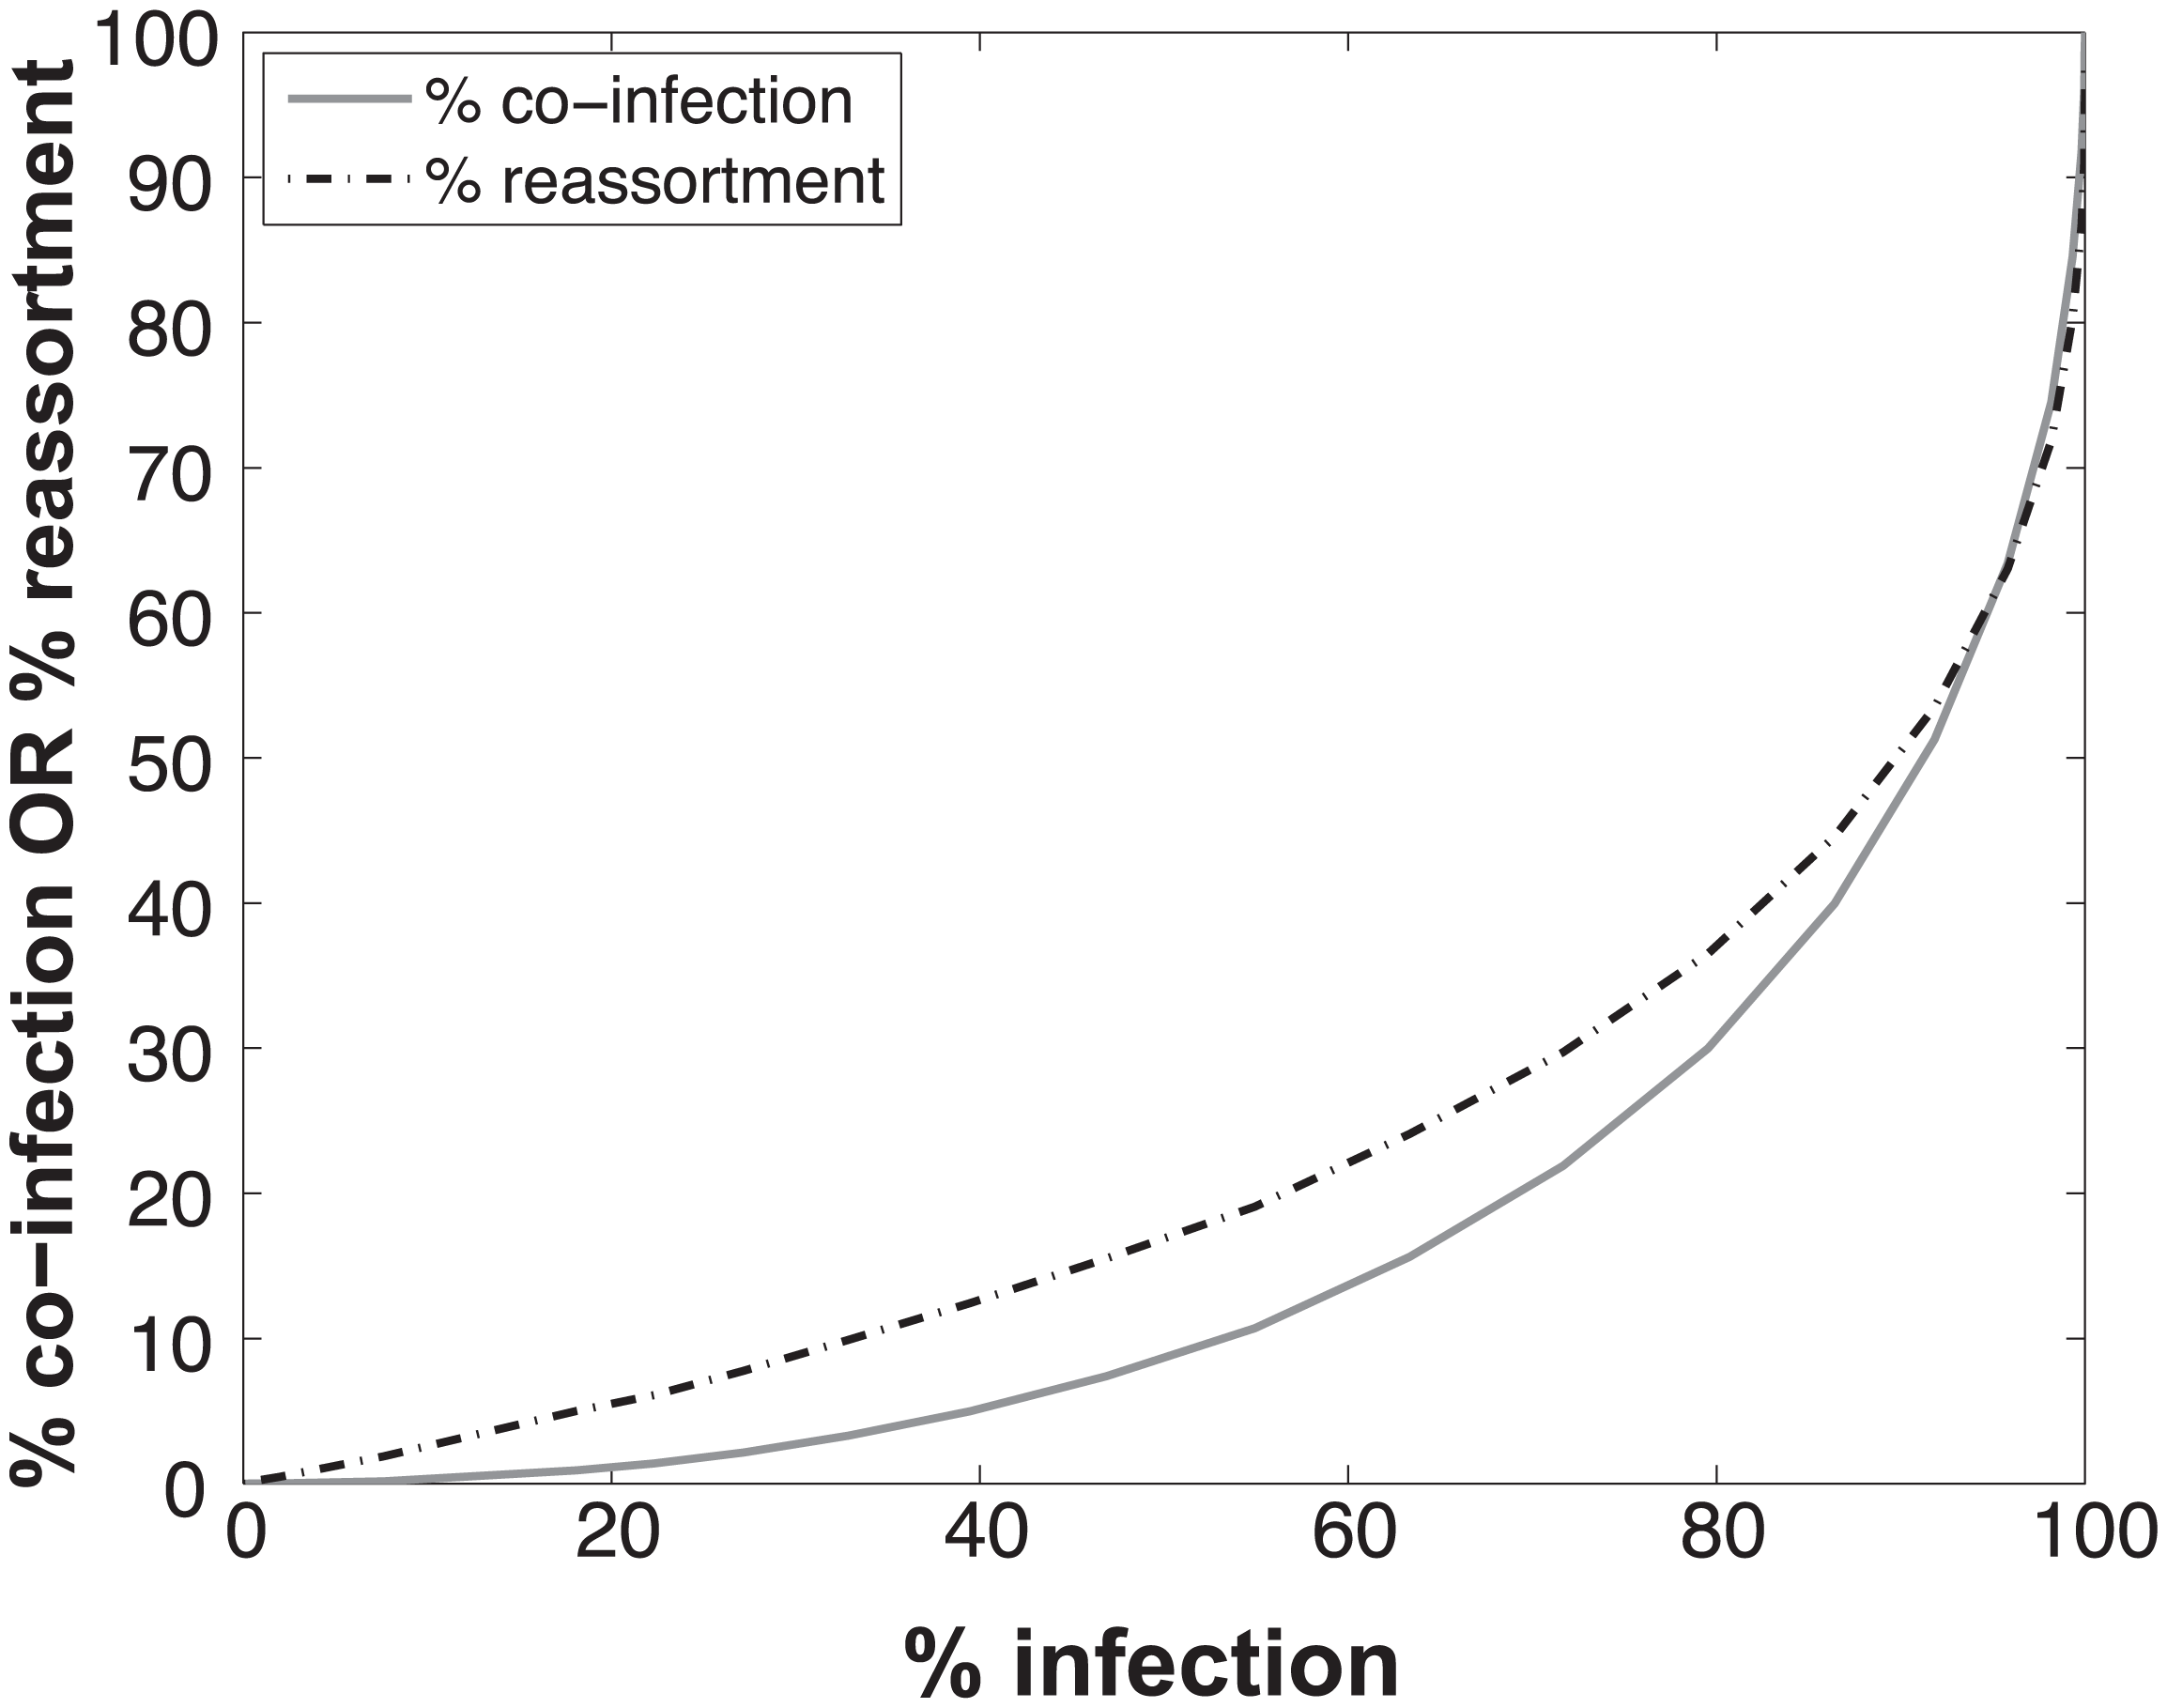 Relationships between % infection and % reassortment or % co-infection, as predicted by computational simulation of co-infection with viruses of two types.